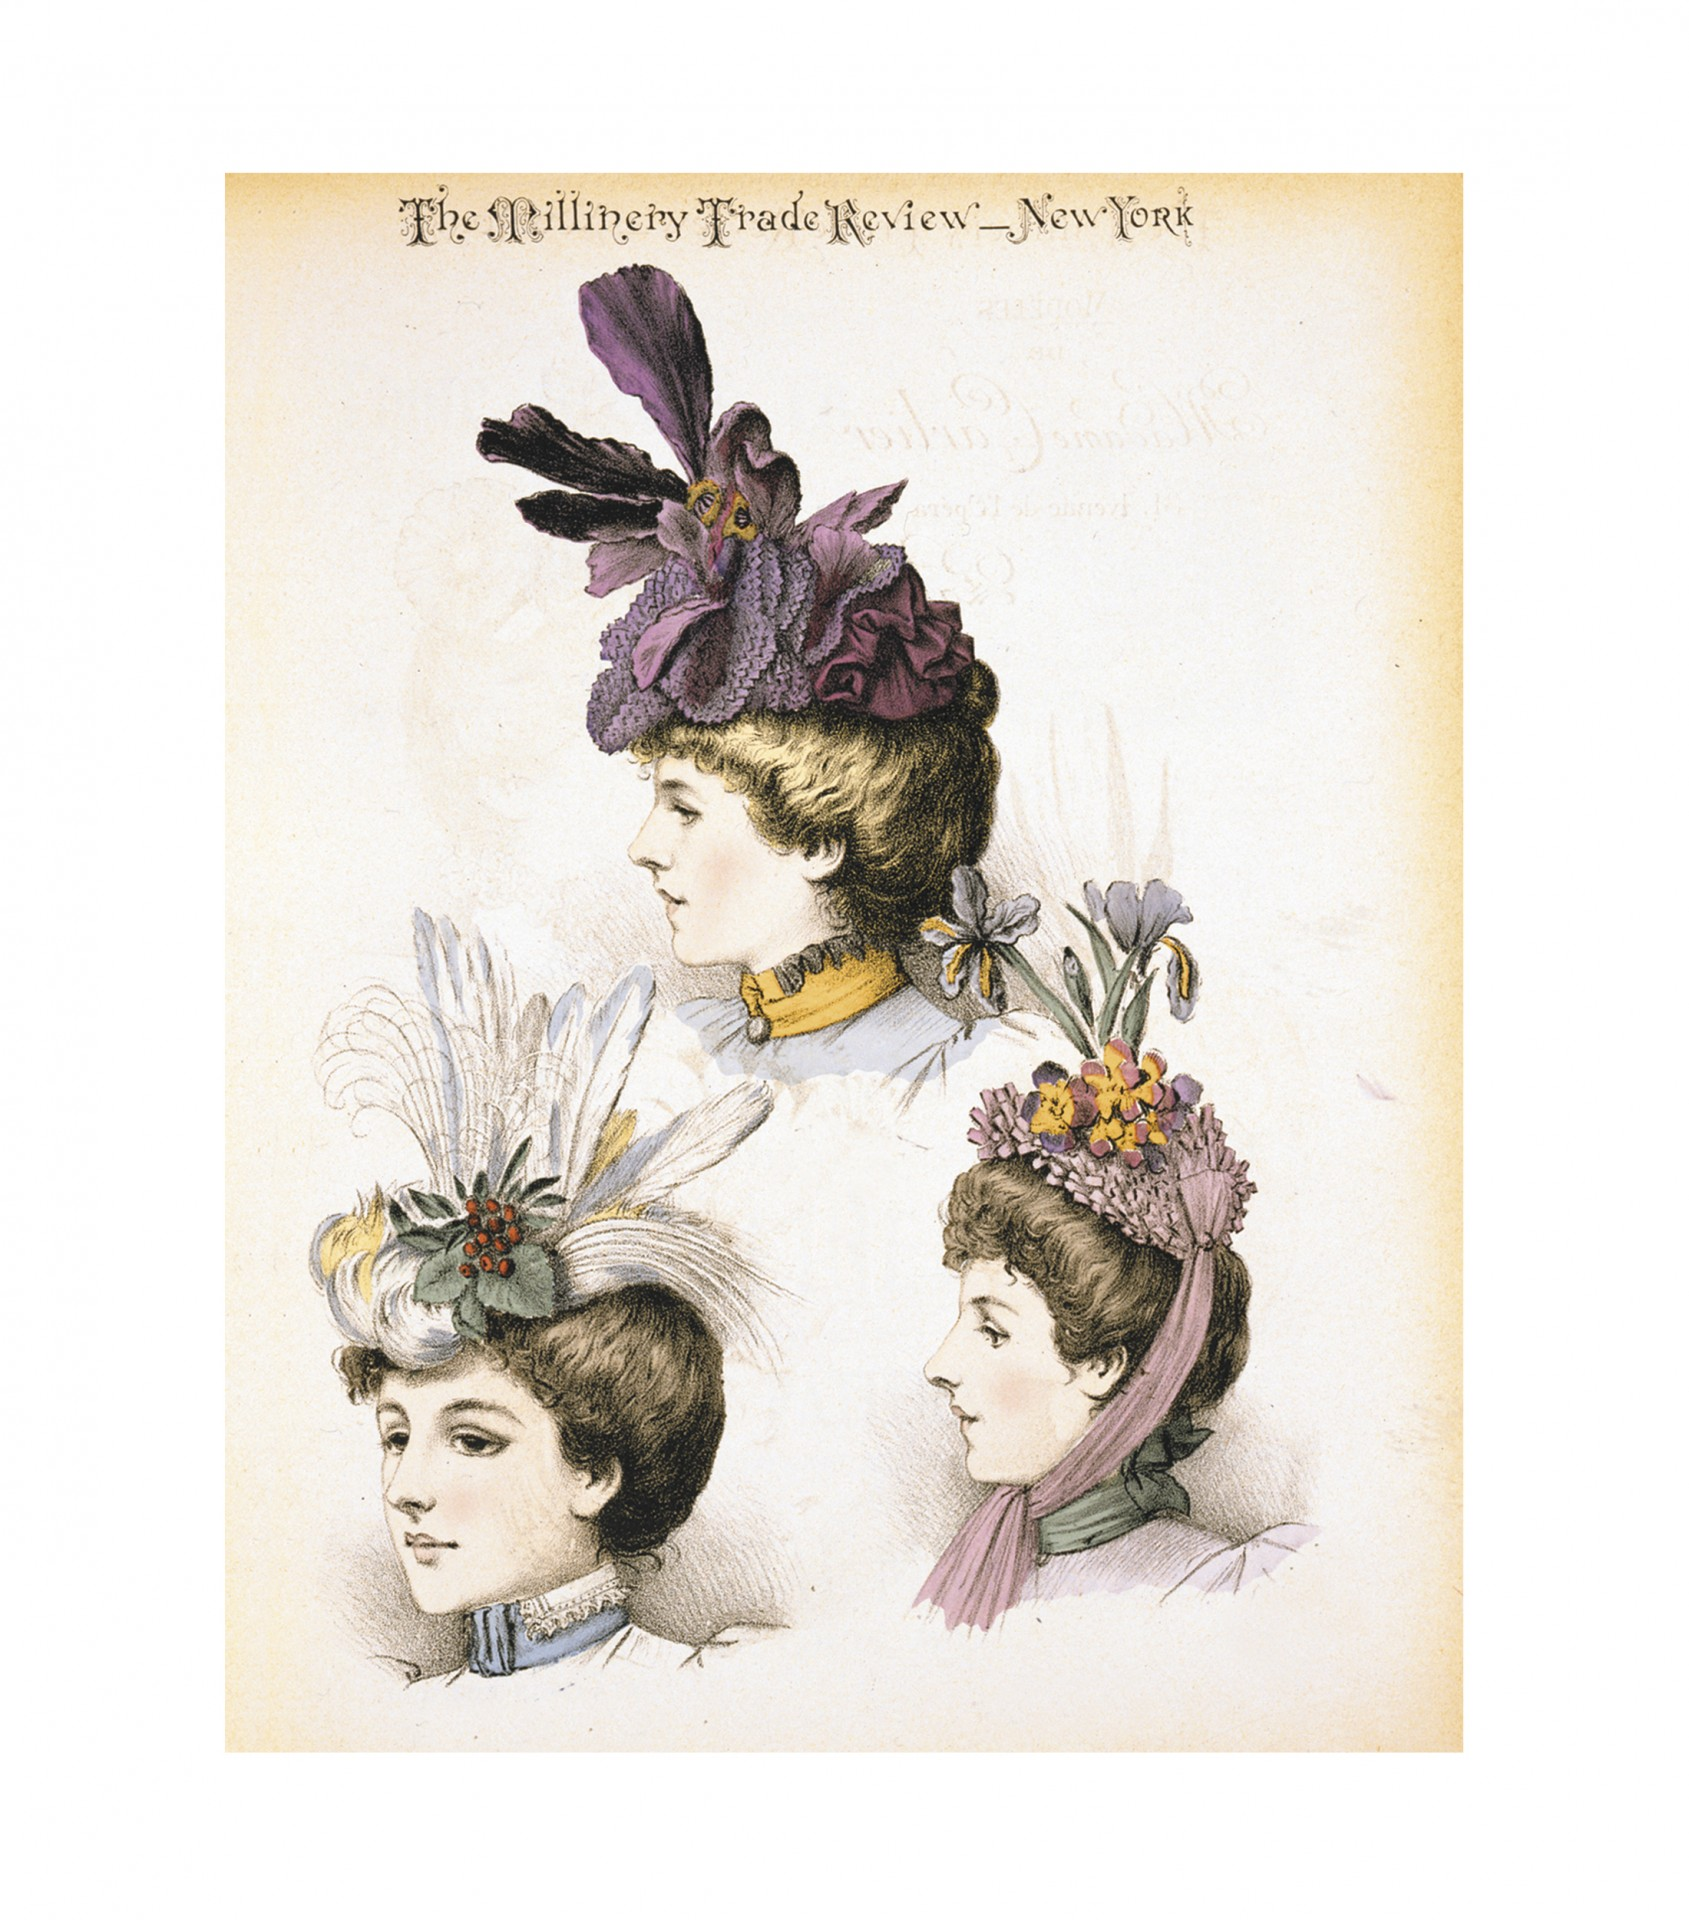 Vintage Women Hats Art Free Stock Photo.